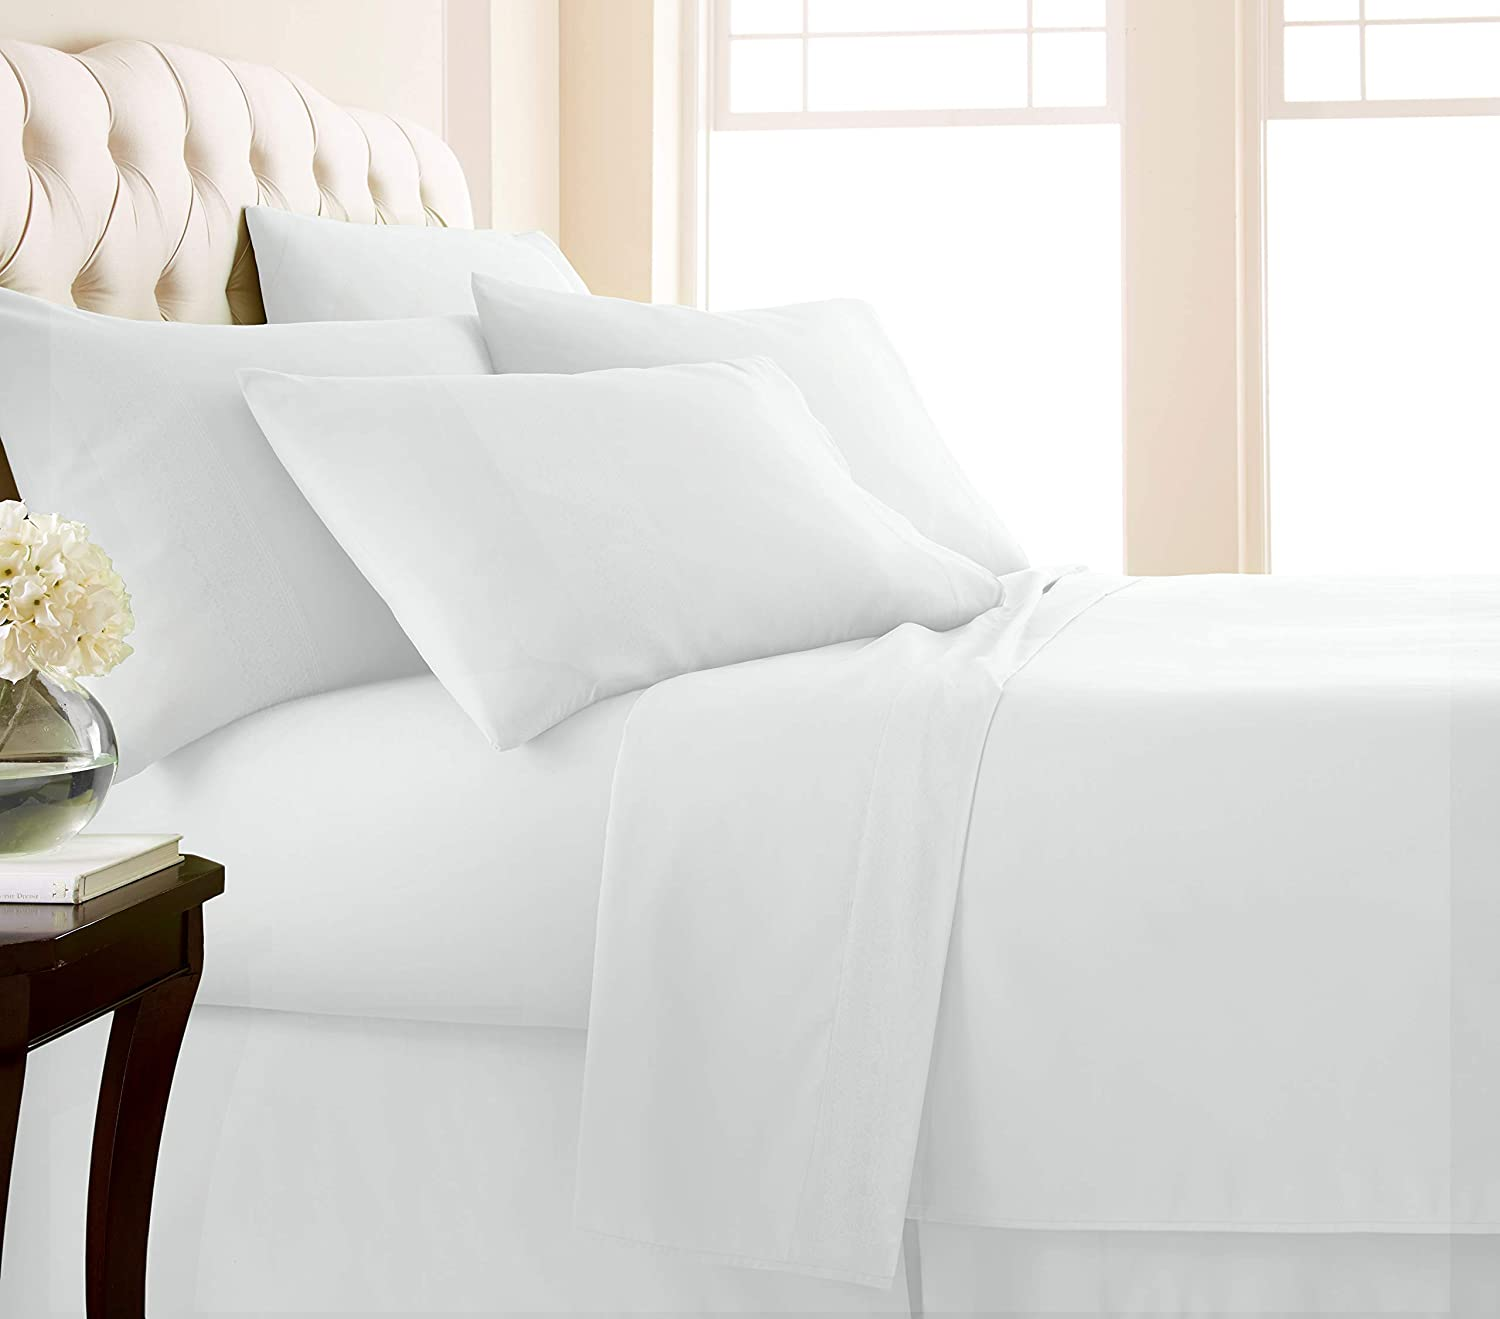 Southshore Fine Living, Inc. Vilano Springs - Premium Collection 6-Piece, 21 Inch Extra-Deep Pocket Sheet Sets, Bright White, Full